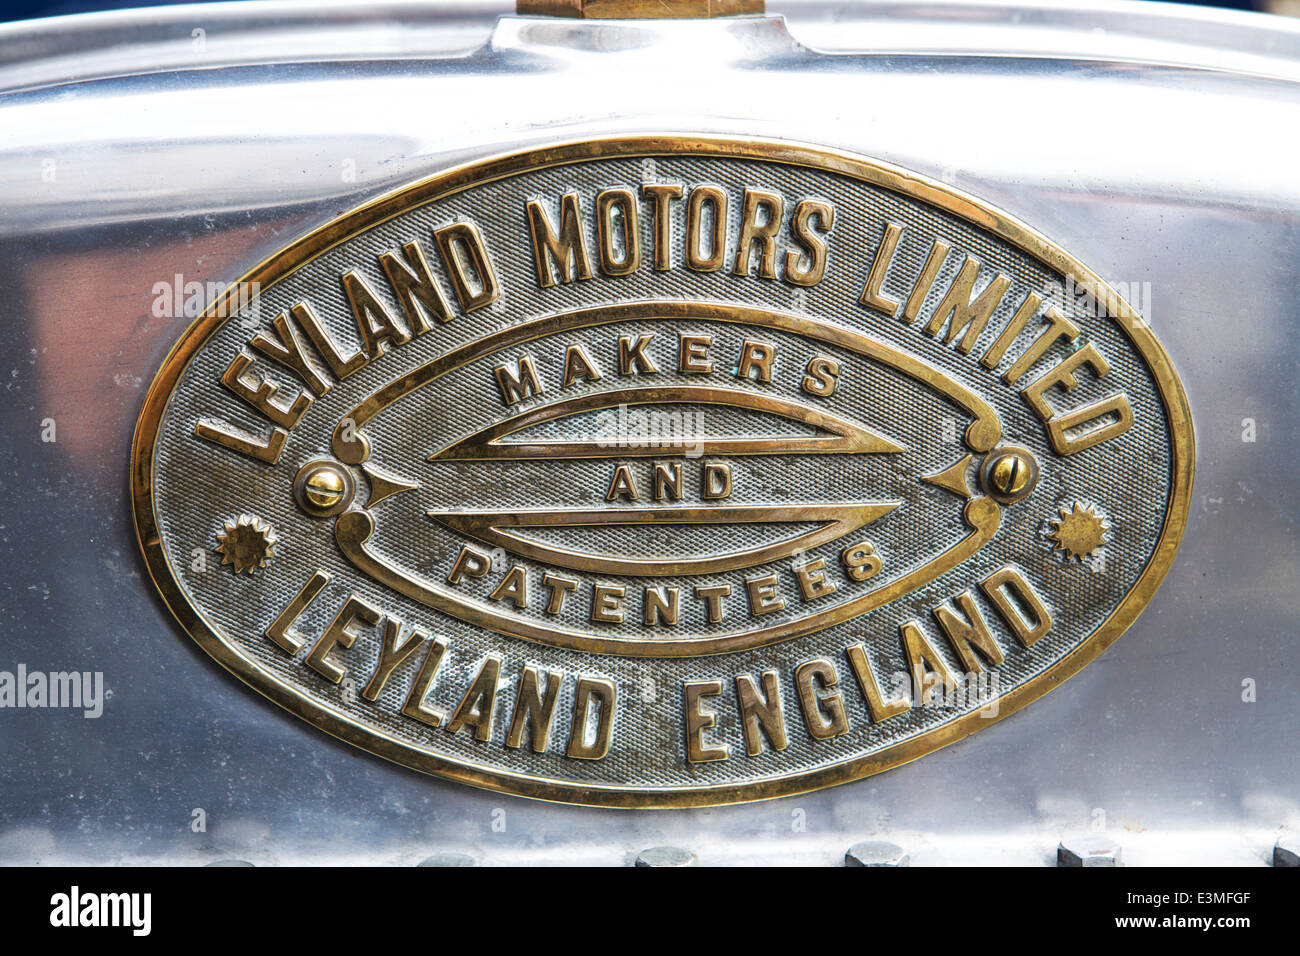 Car radiator brass plate, Leyland Motors Ltd. - Stock Image